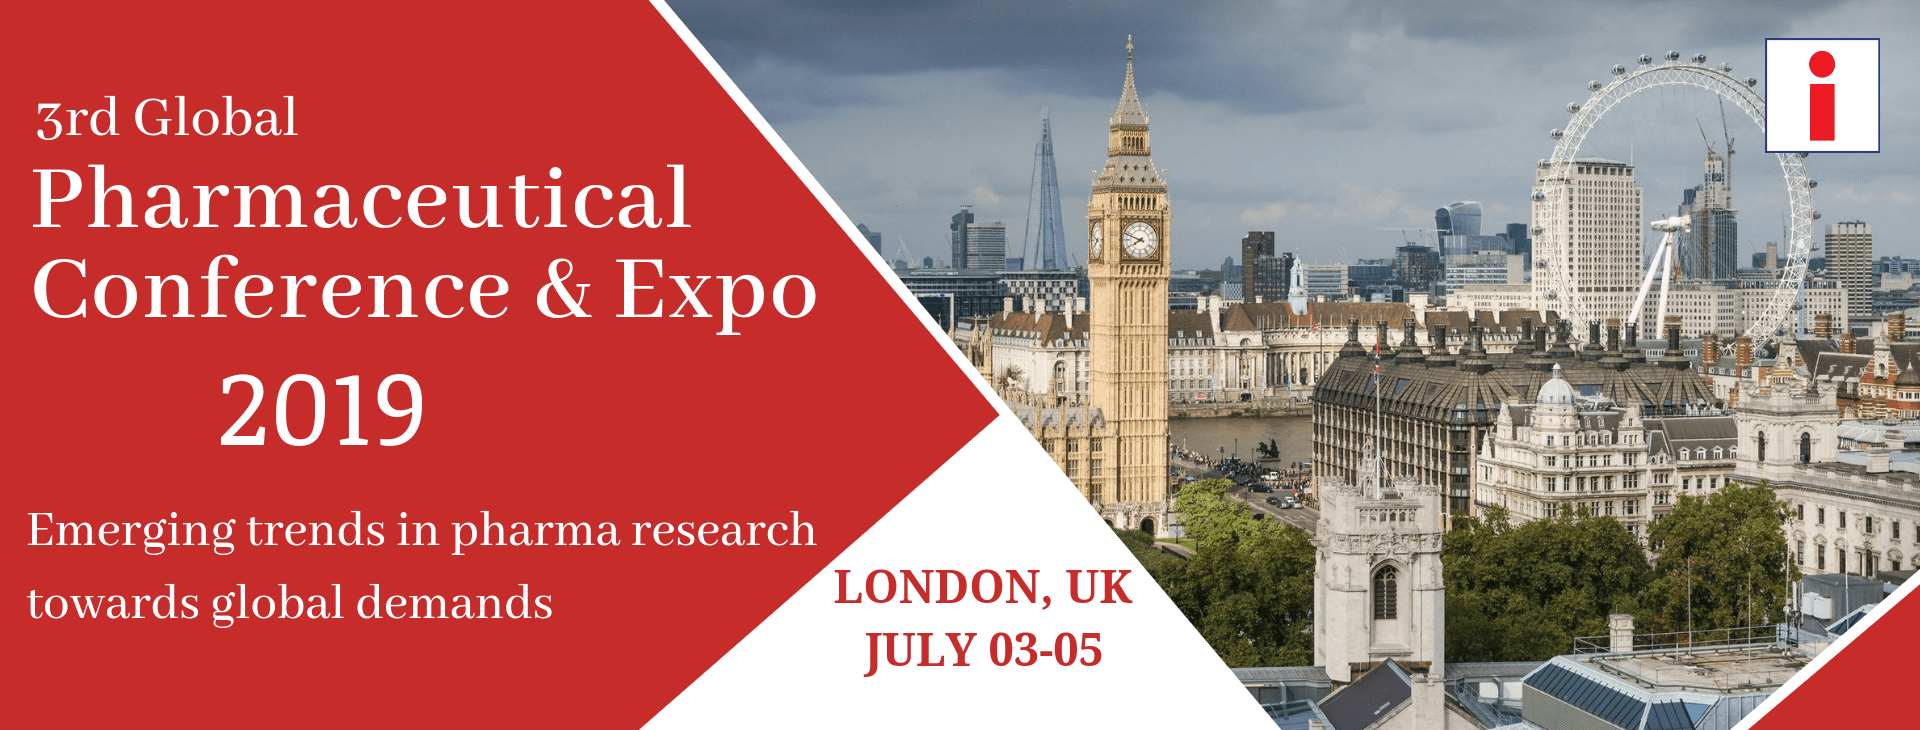 Banner for ipharma london event